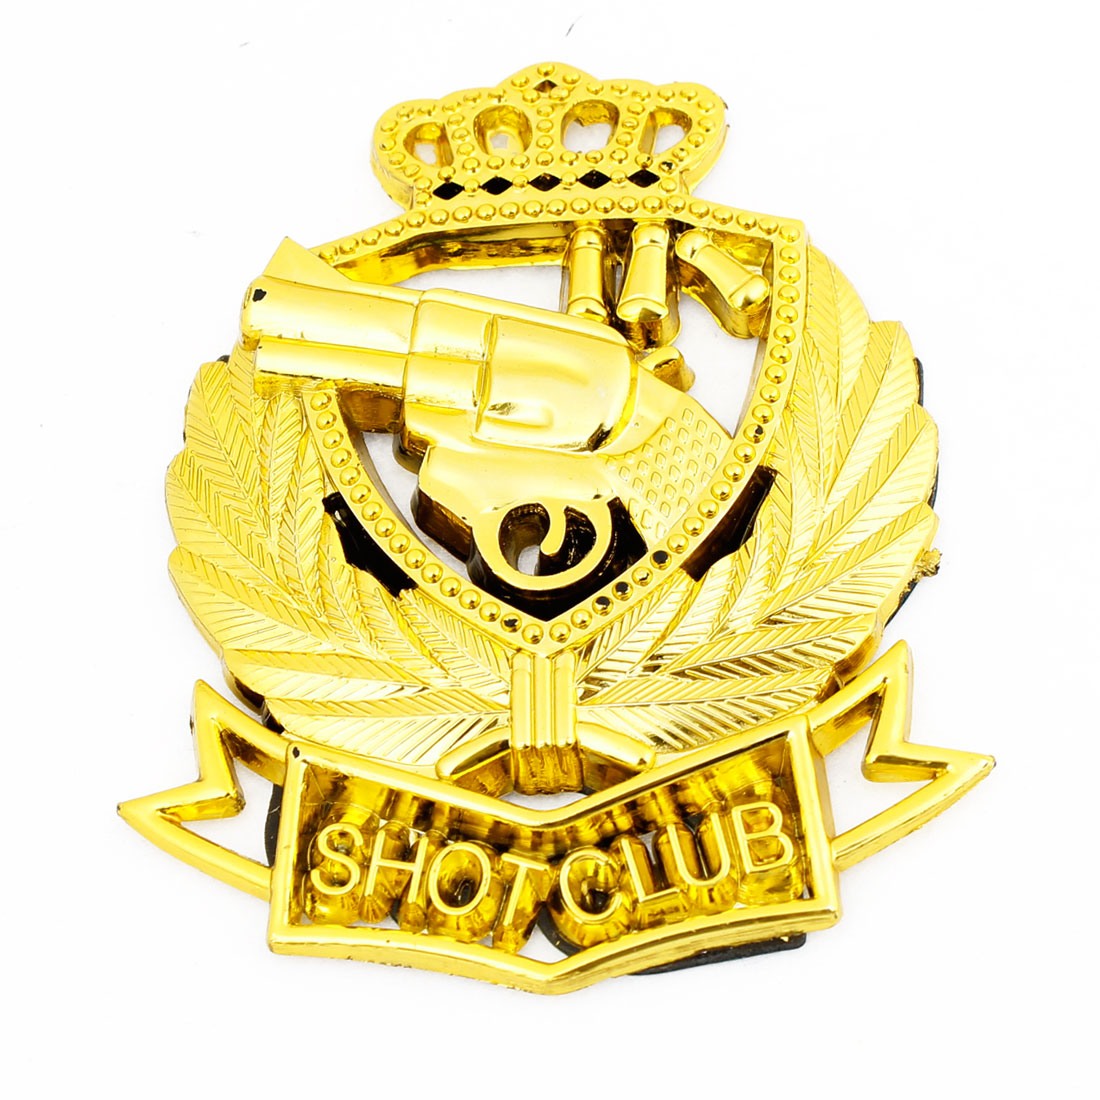 Gold Tone Crown Gun Shaped Decal 3D Sticker Ornament for Auto Car